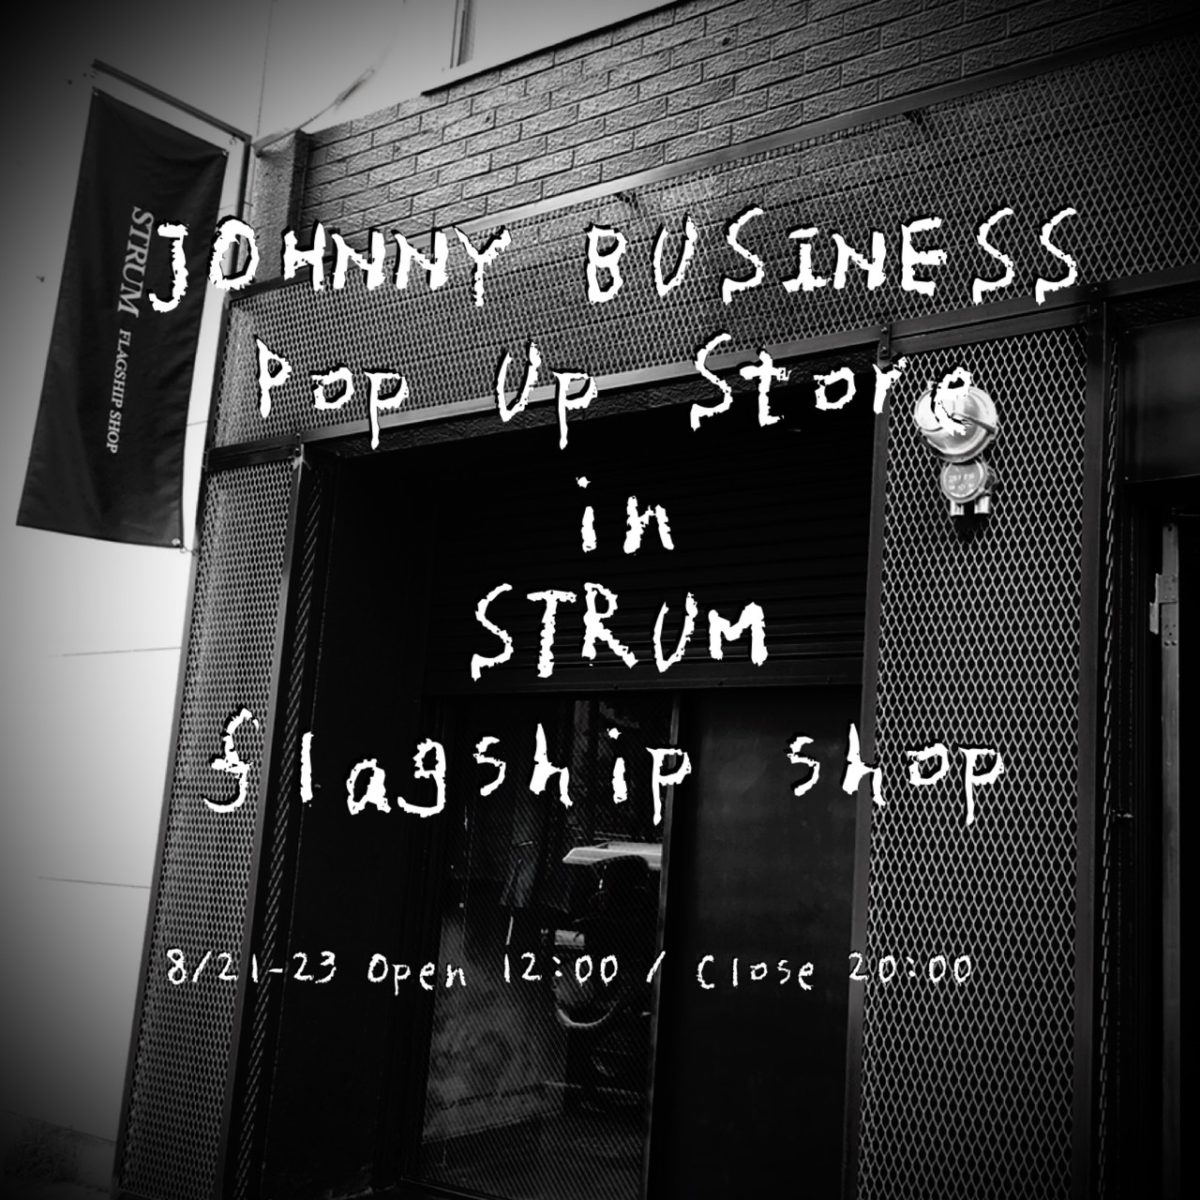 JOHNNY BUSINESS Pop Up Store